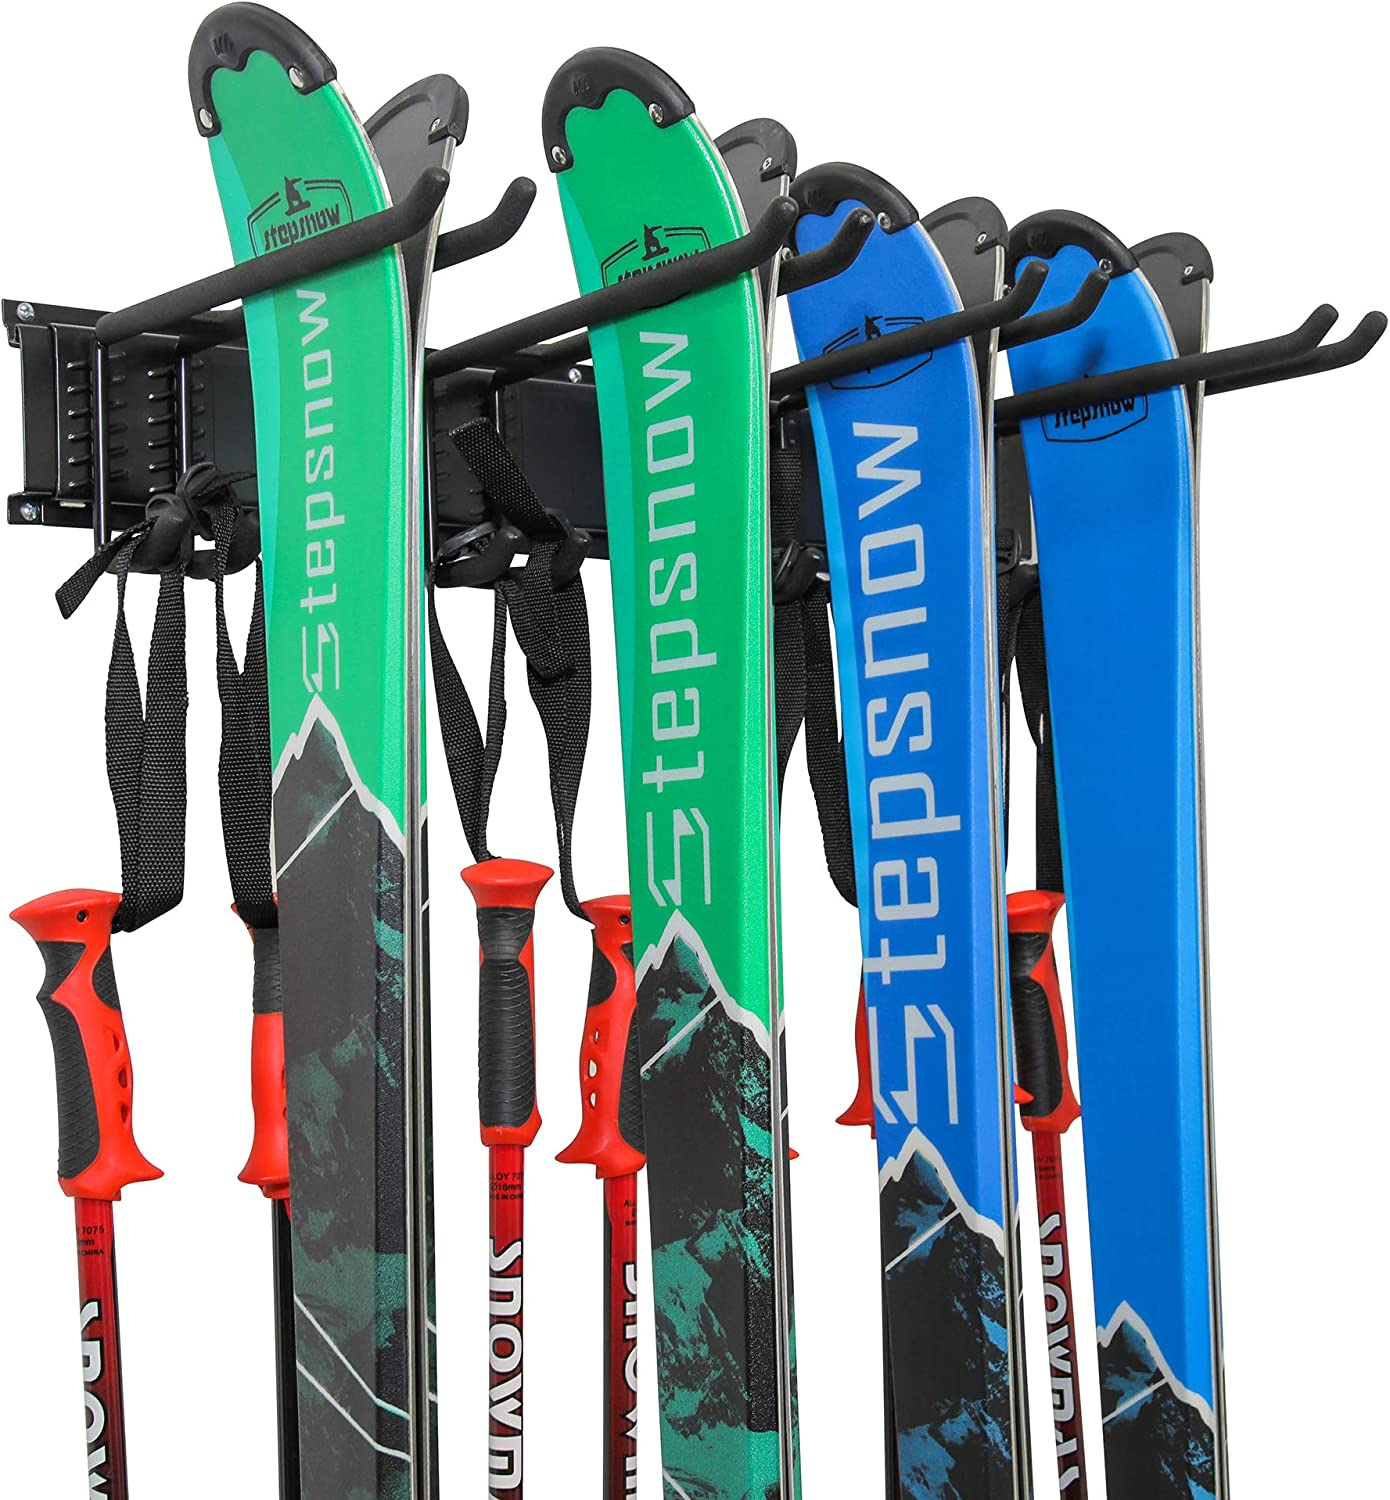 Amazon Com Ski Wall Rack Holds 4 Pairs Of Skis Skiing Poles Or Snowboard For Home And Garage Storage Wall Mounted Heavy Duty Adjustable Rubber Coated Hooks Sports Outdoors